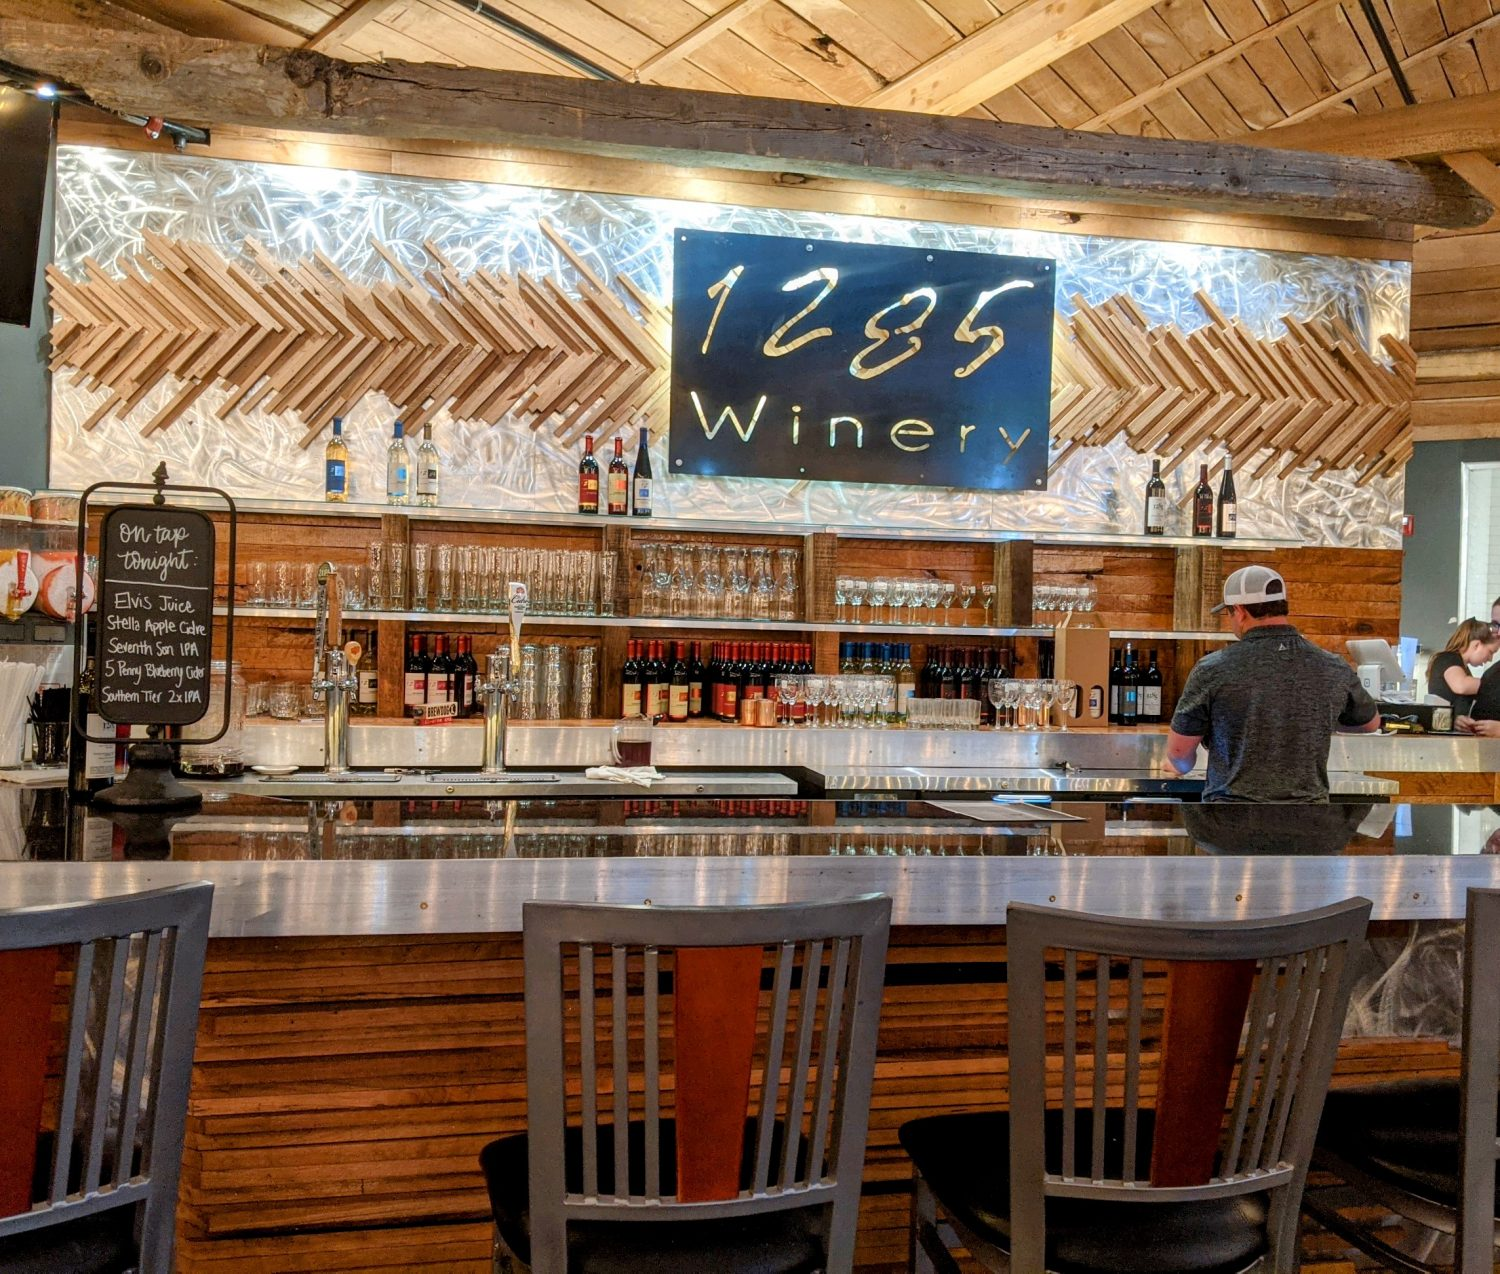 1285 Winery at The Blueberry Patch